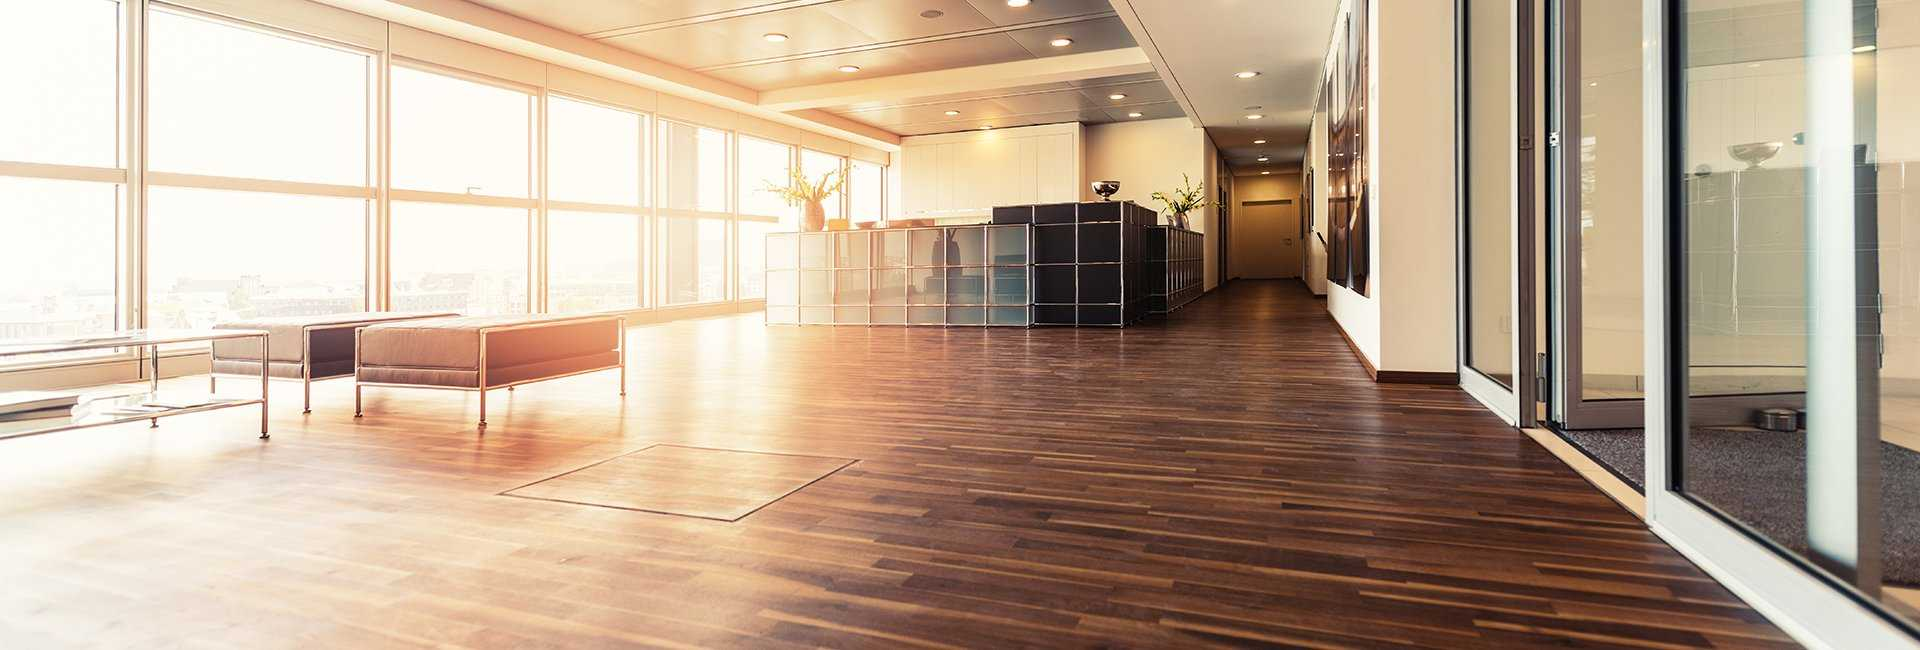 commercial hardwood floor refinishing in Barrington